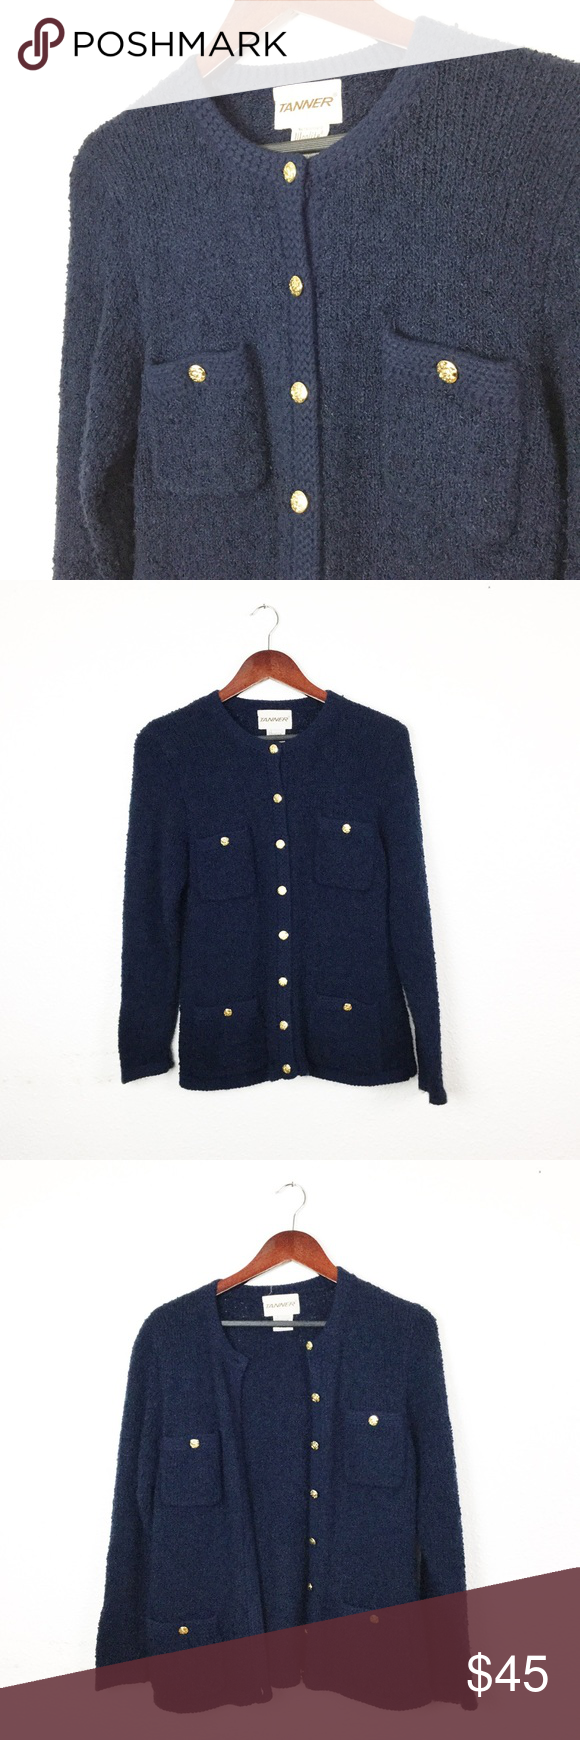 Vintage tanner navy cardigan | Hand washing, Navy and Blue gold